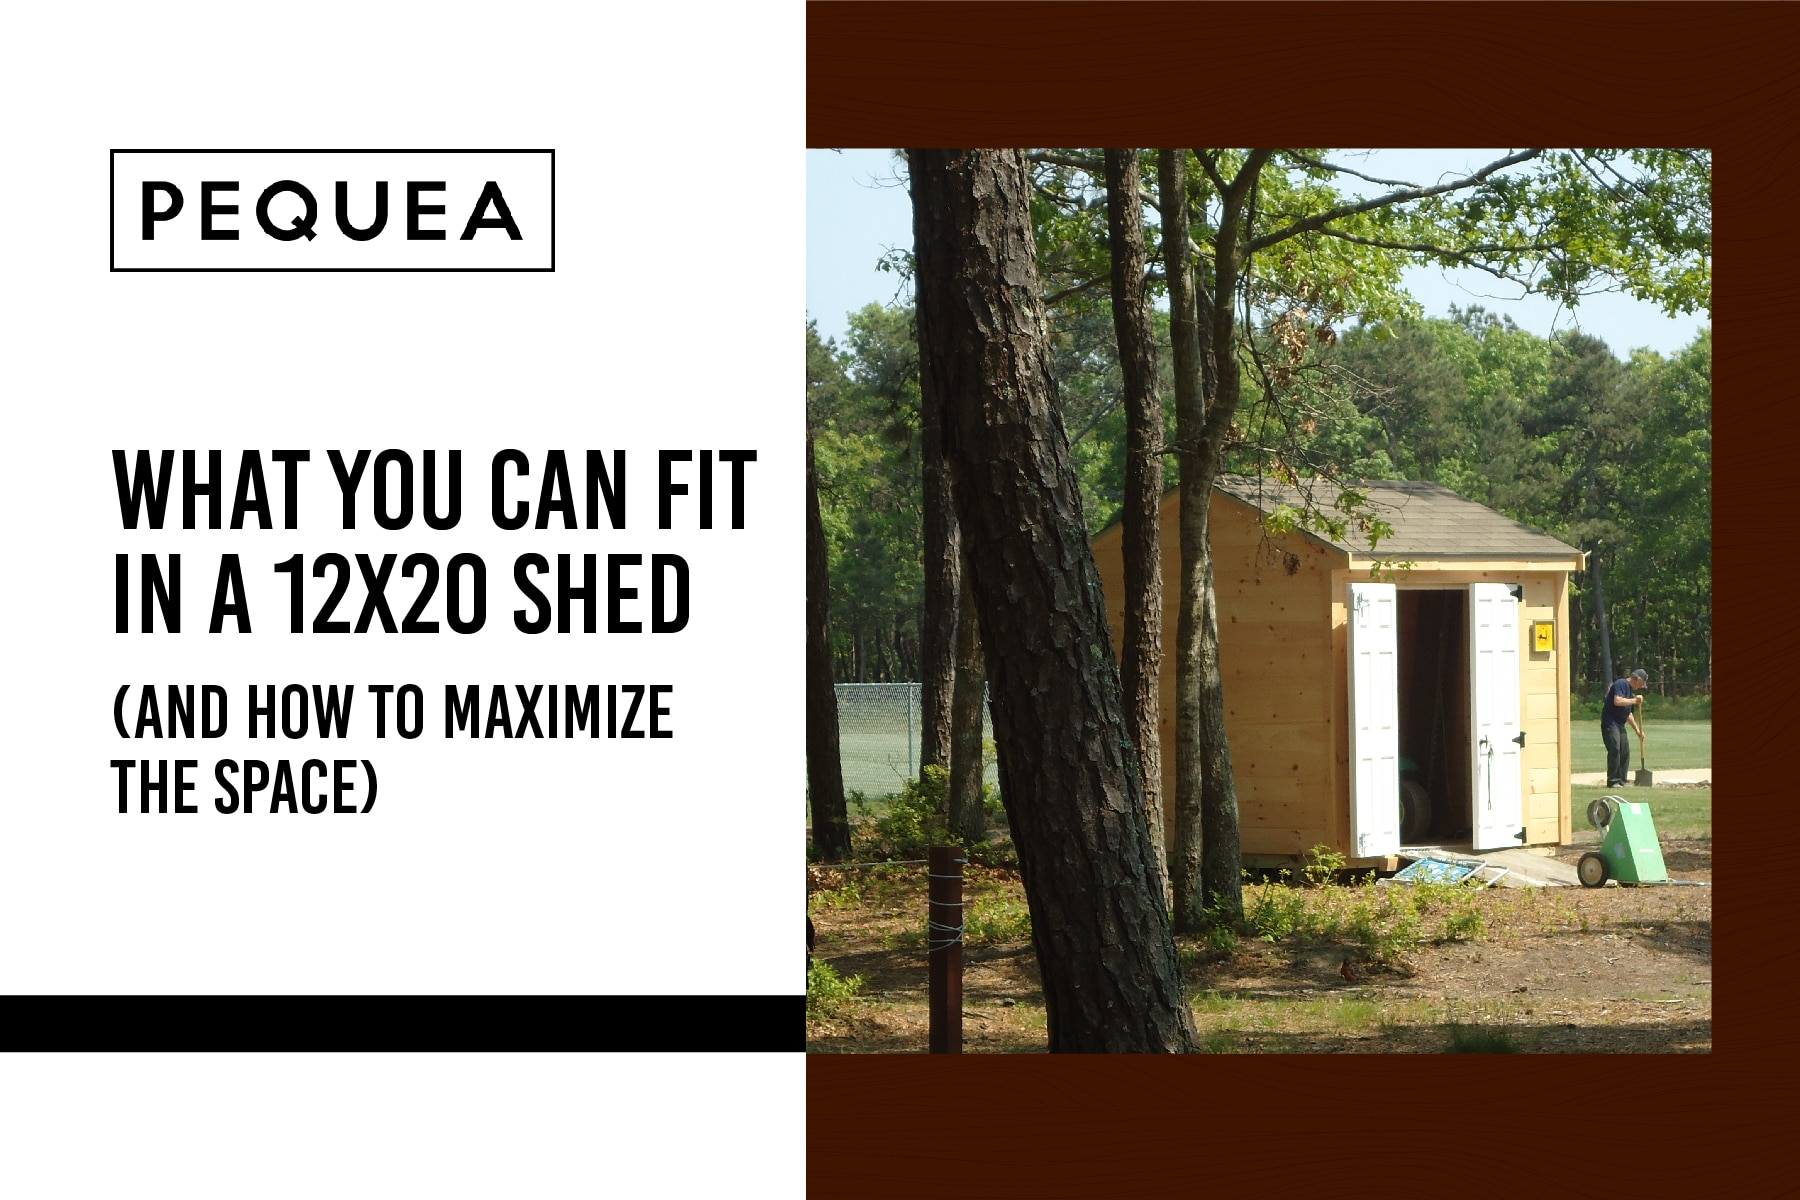 What You Can Fit In A 12x20 Shed (and how to maximize the space) 3